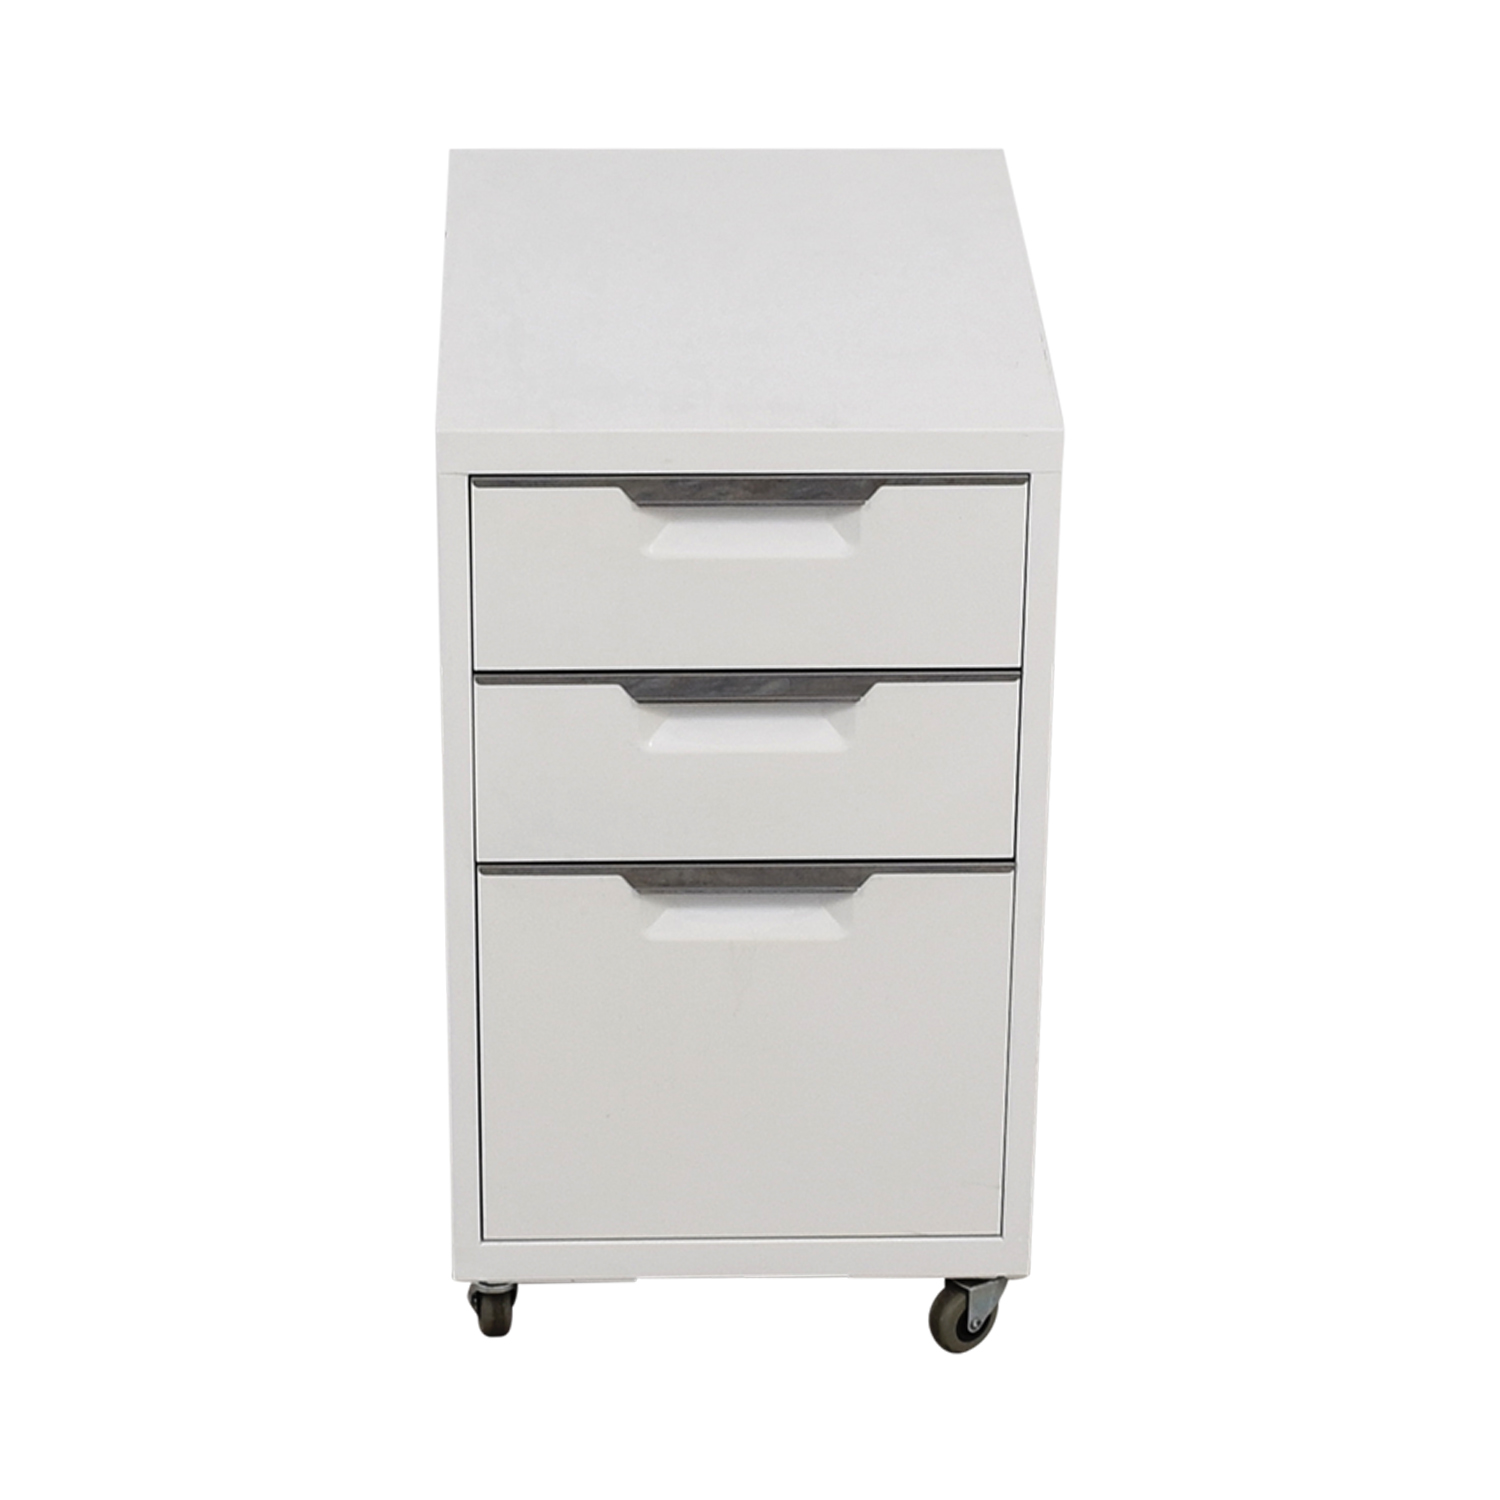 CB2 CB2 TPS White 3-Drawer Filing Cabinet coupon